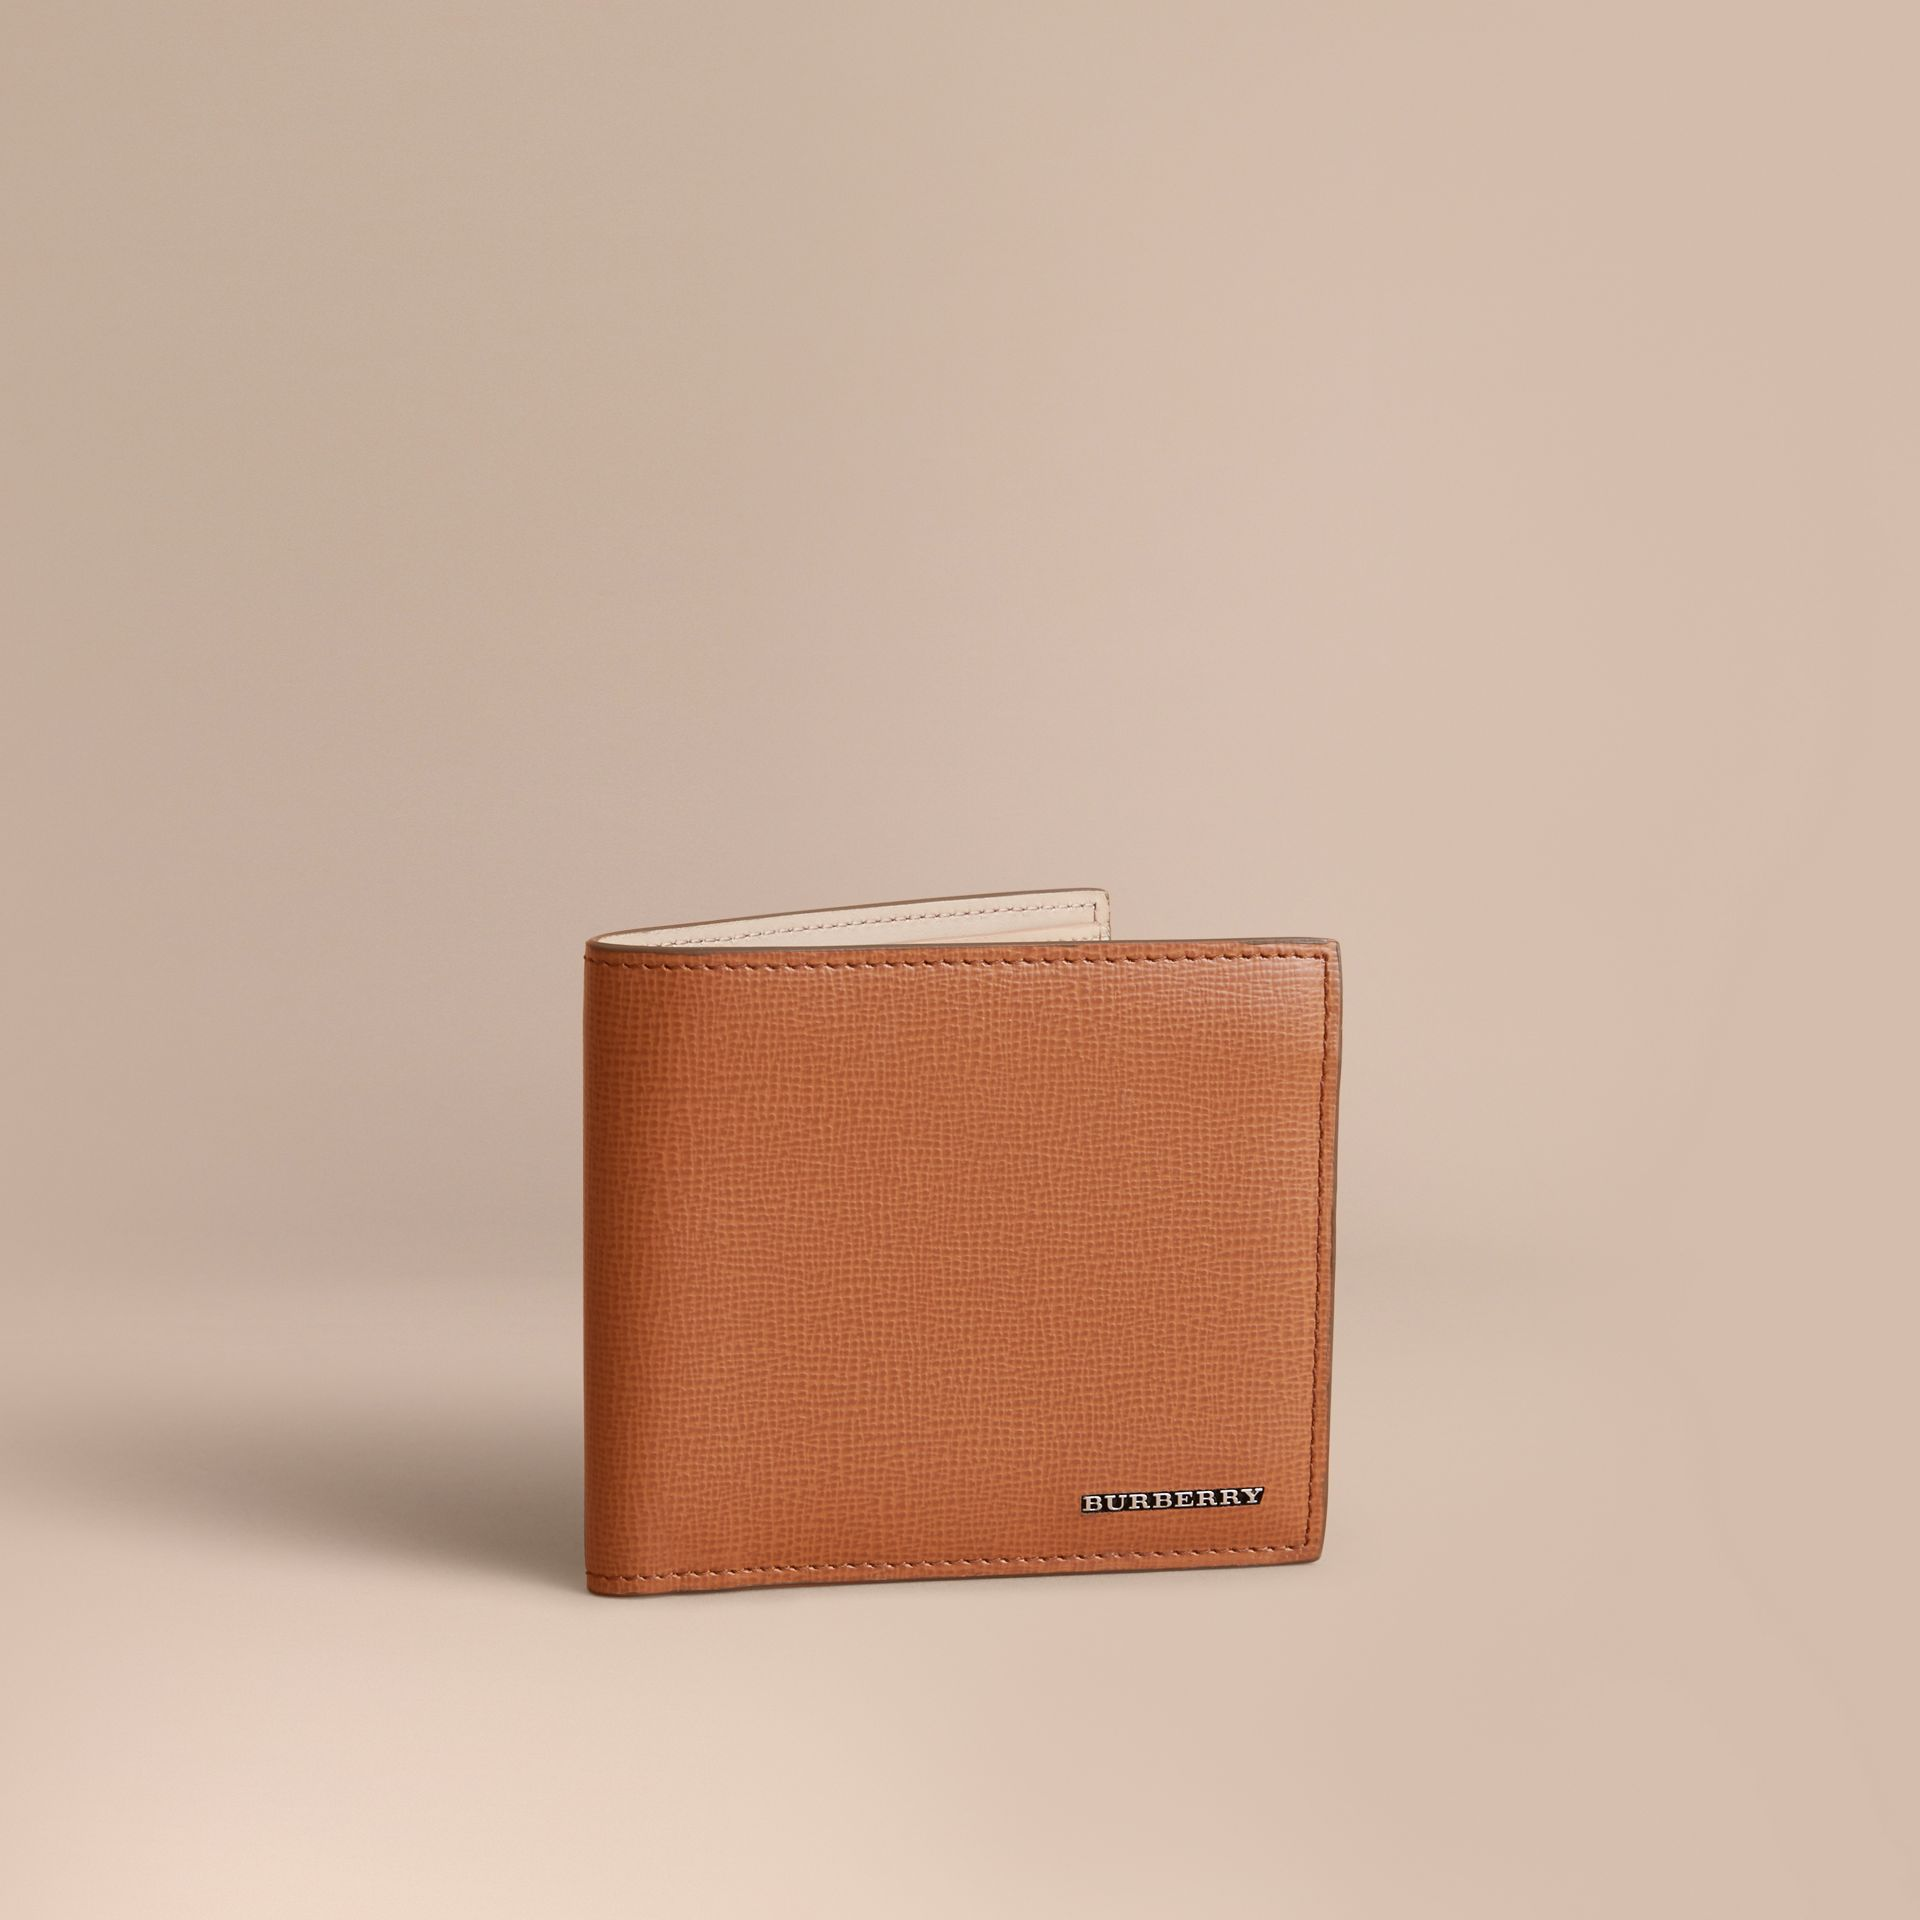 London Leather International Bifold Wallet in Tan | Burberry Australia - gallery image 1